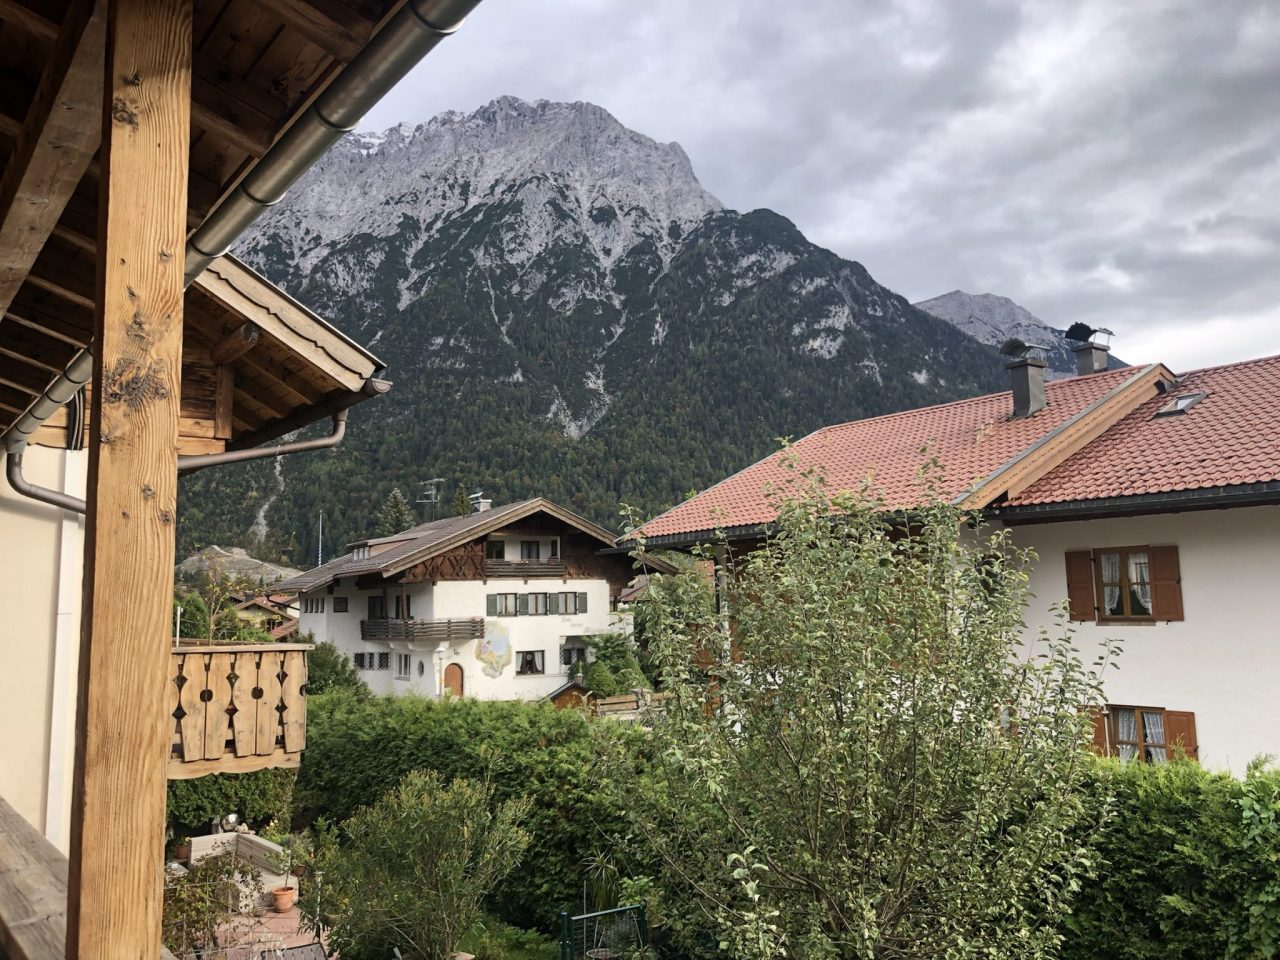 View from my B&B in Mittenwald